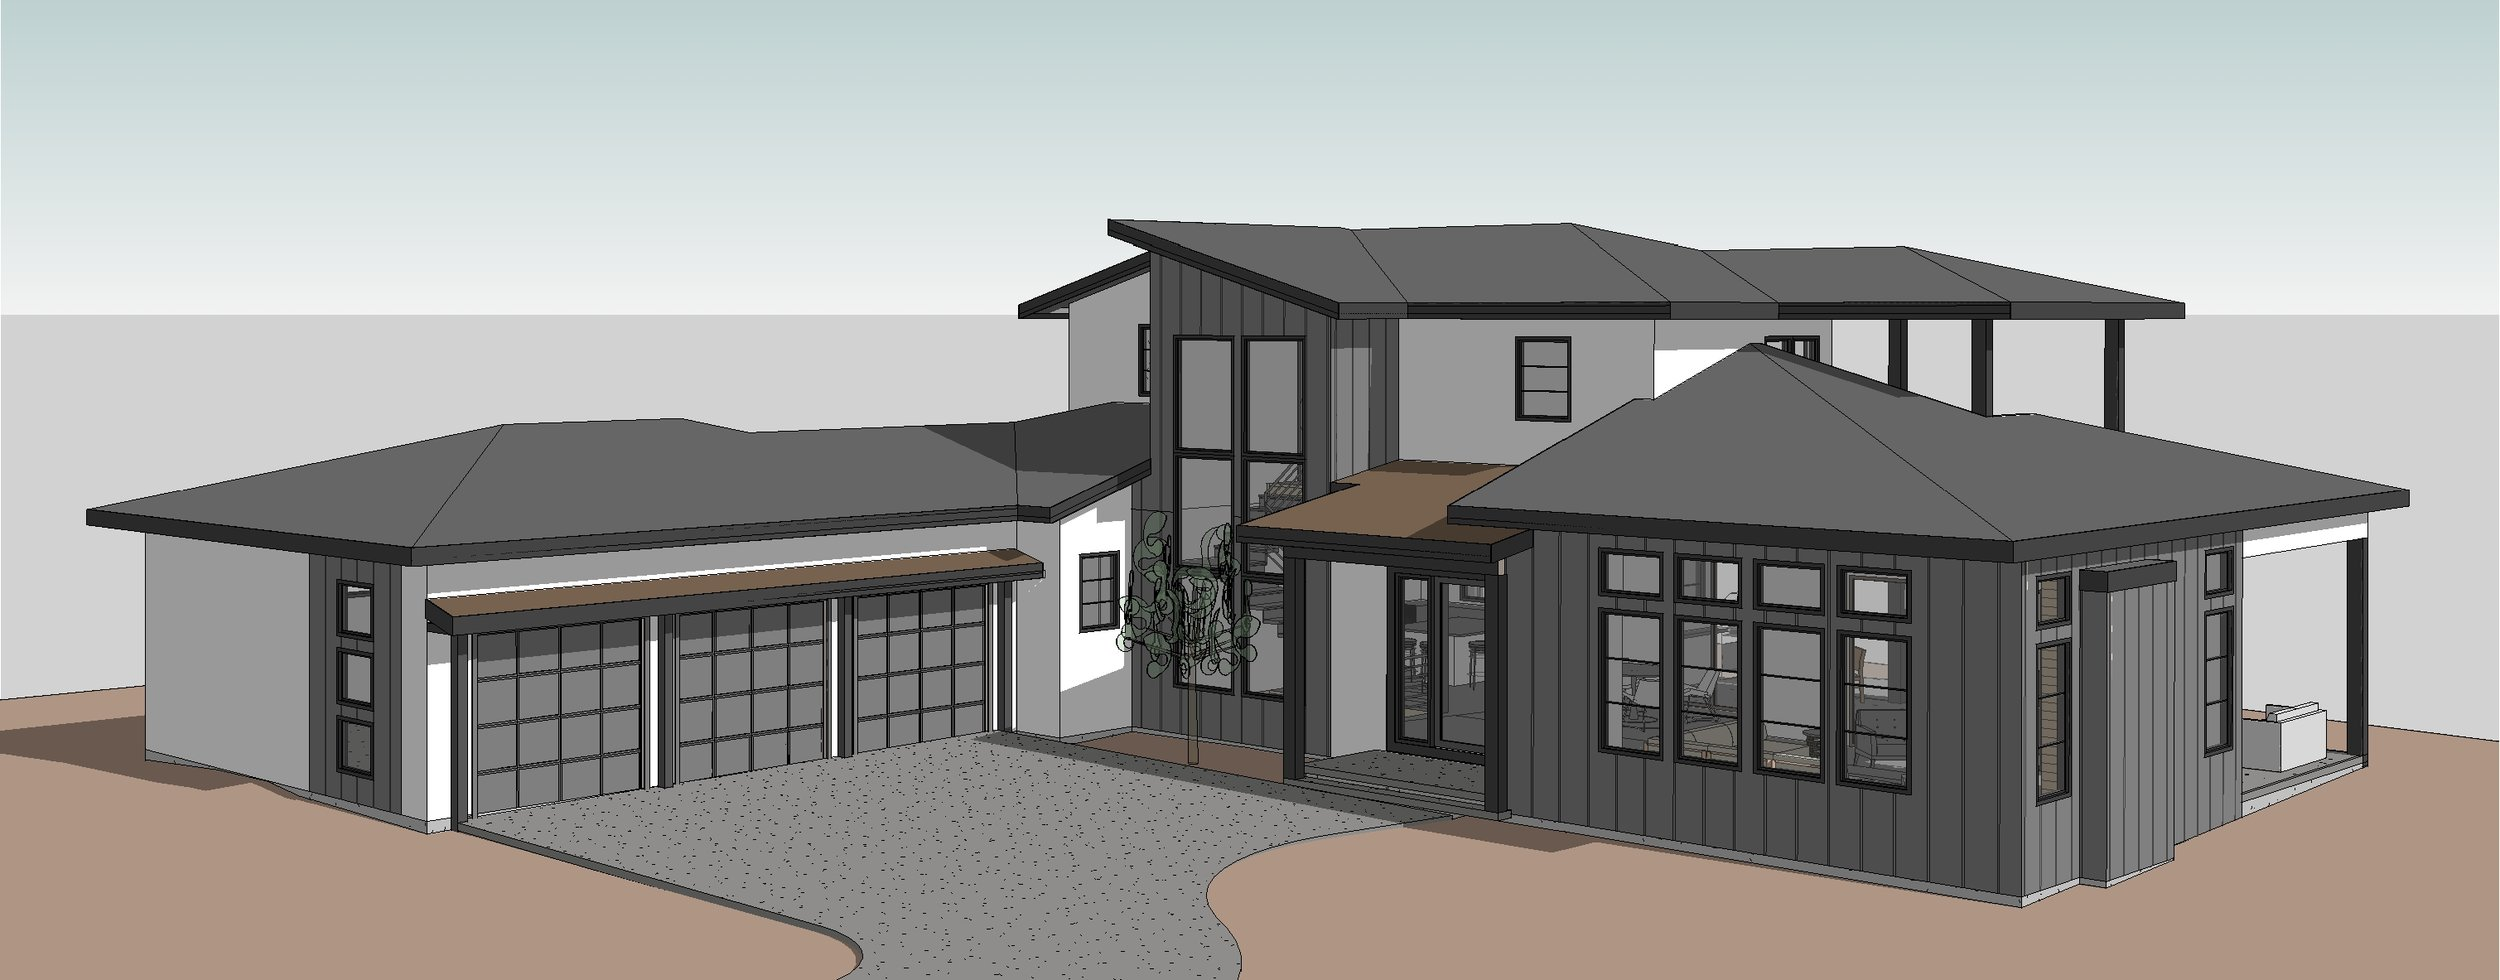 Smoot10 - 3D View - FRONT ABOVE.jpg